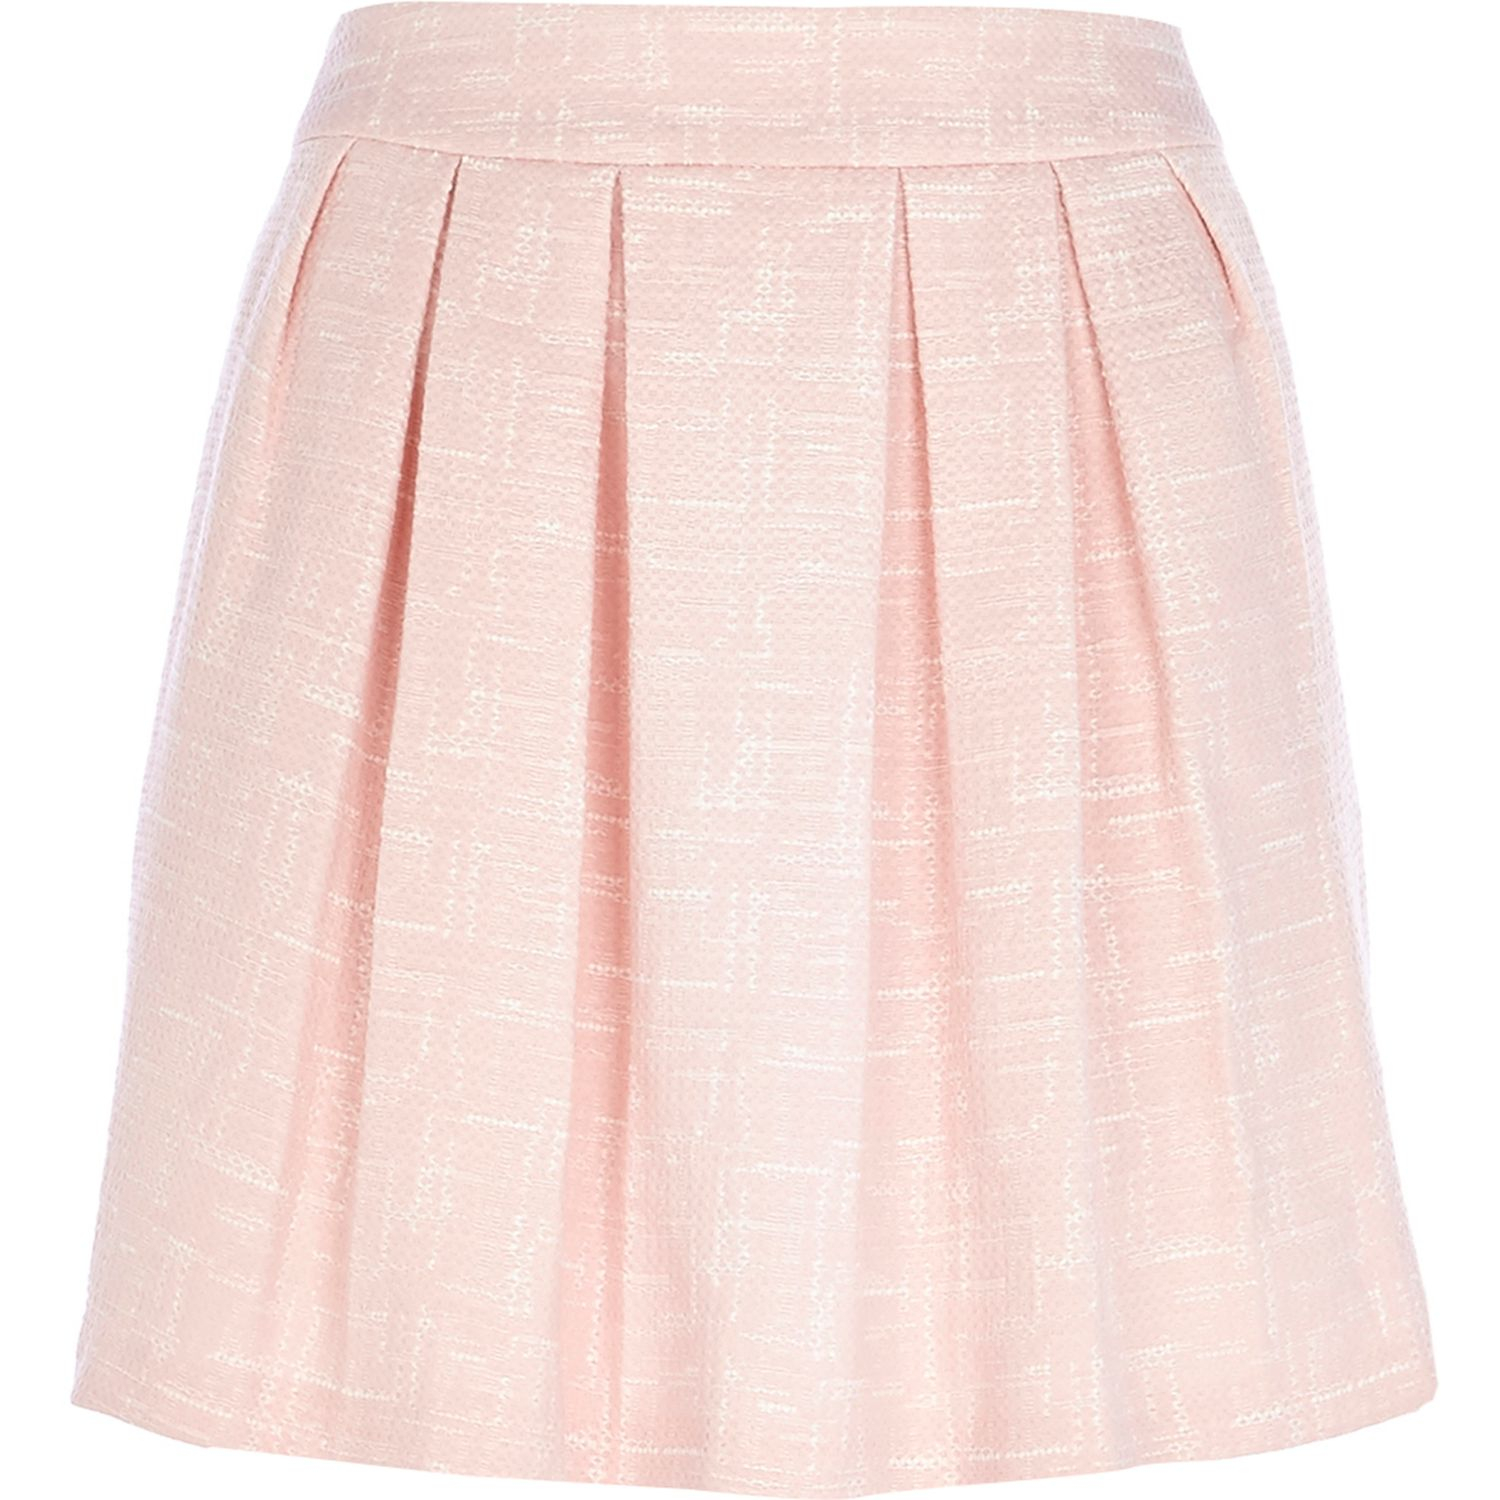 River island Light Pink Jacquard Pleated Mini Skirt in Pink | Lyst